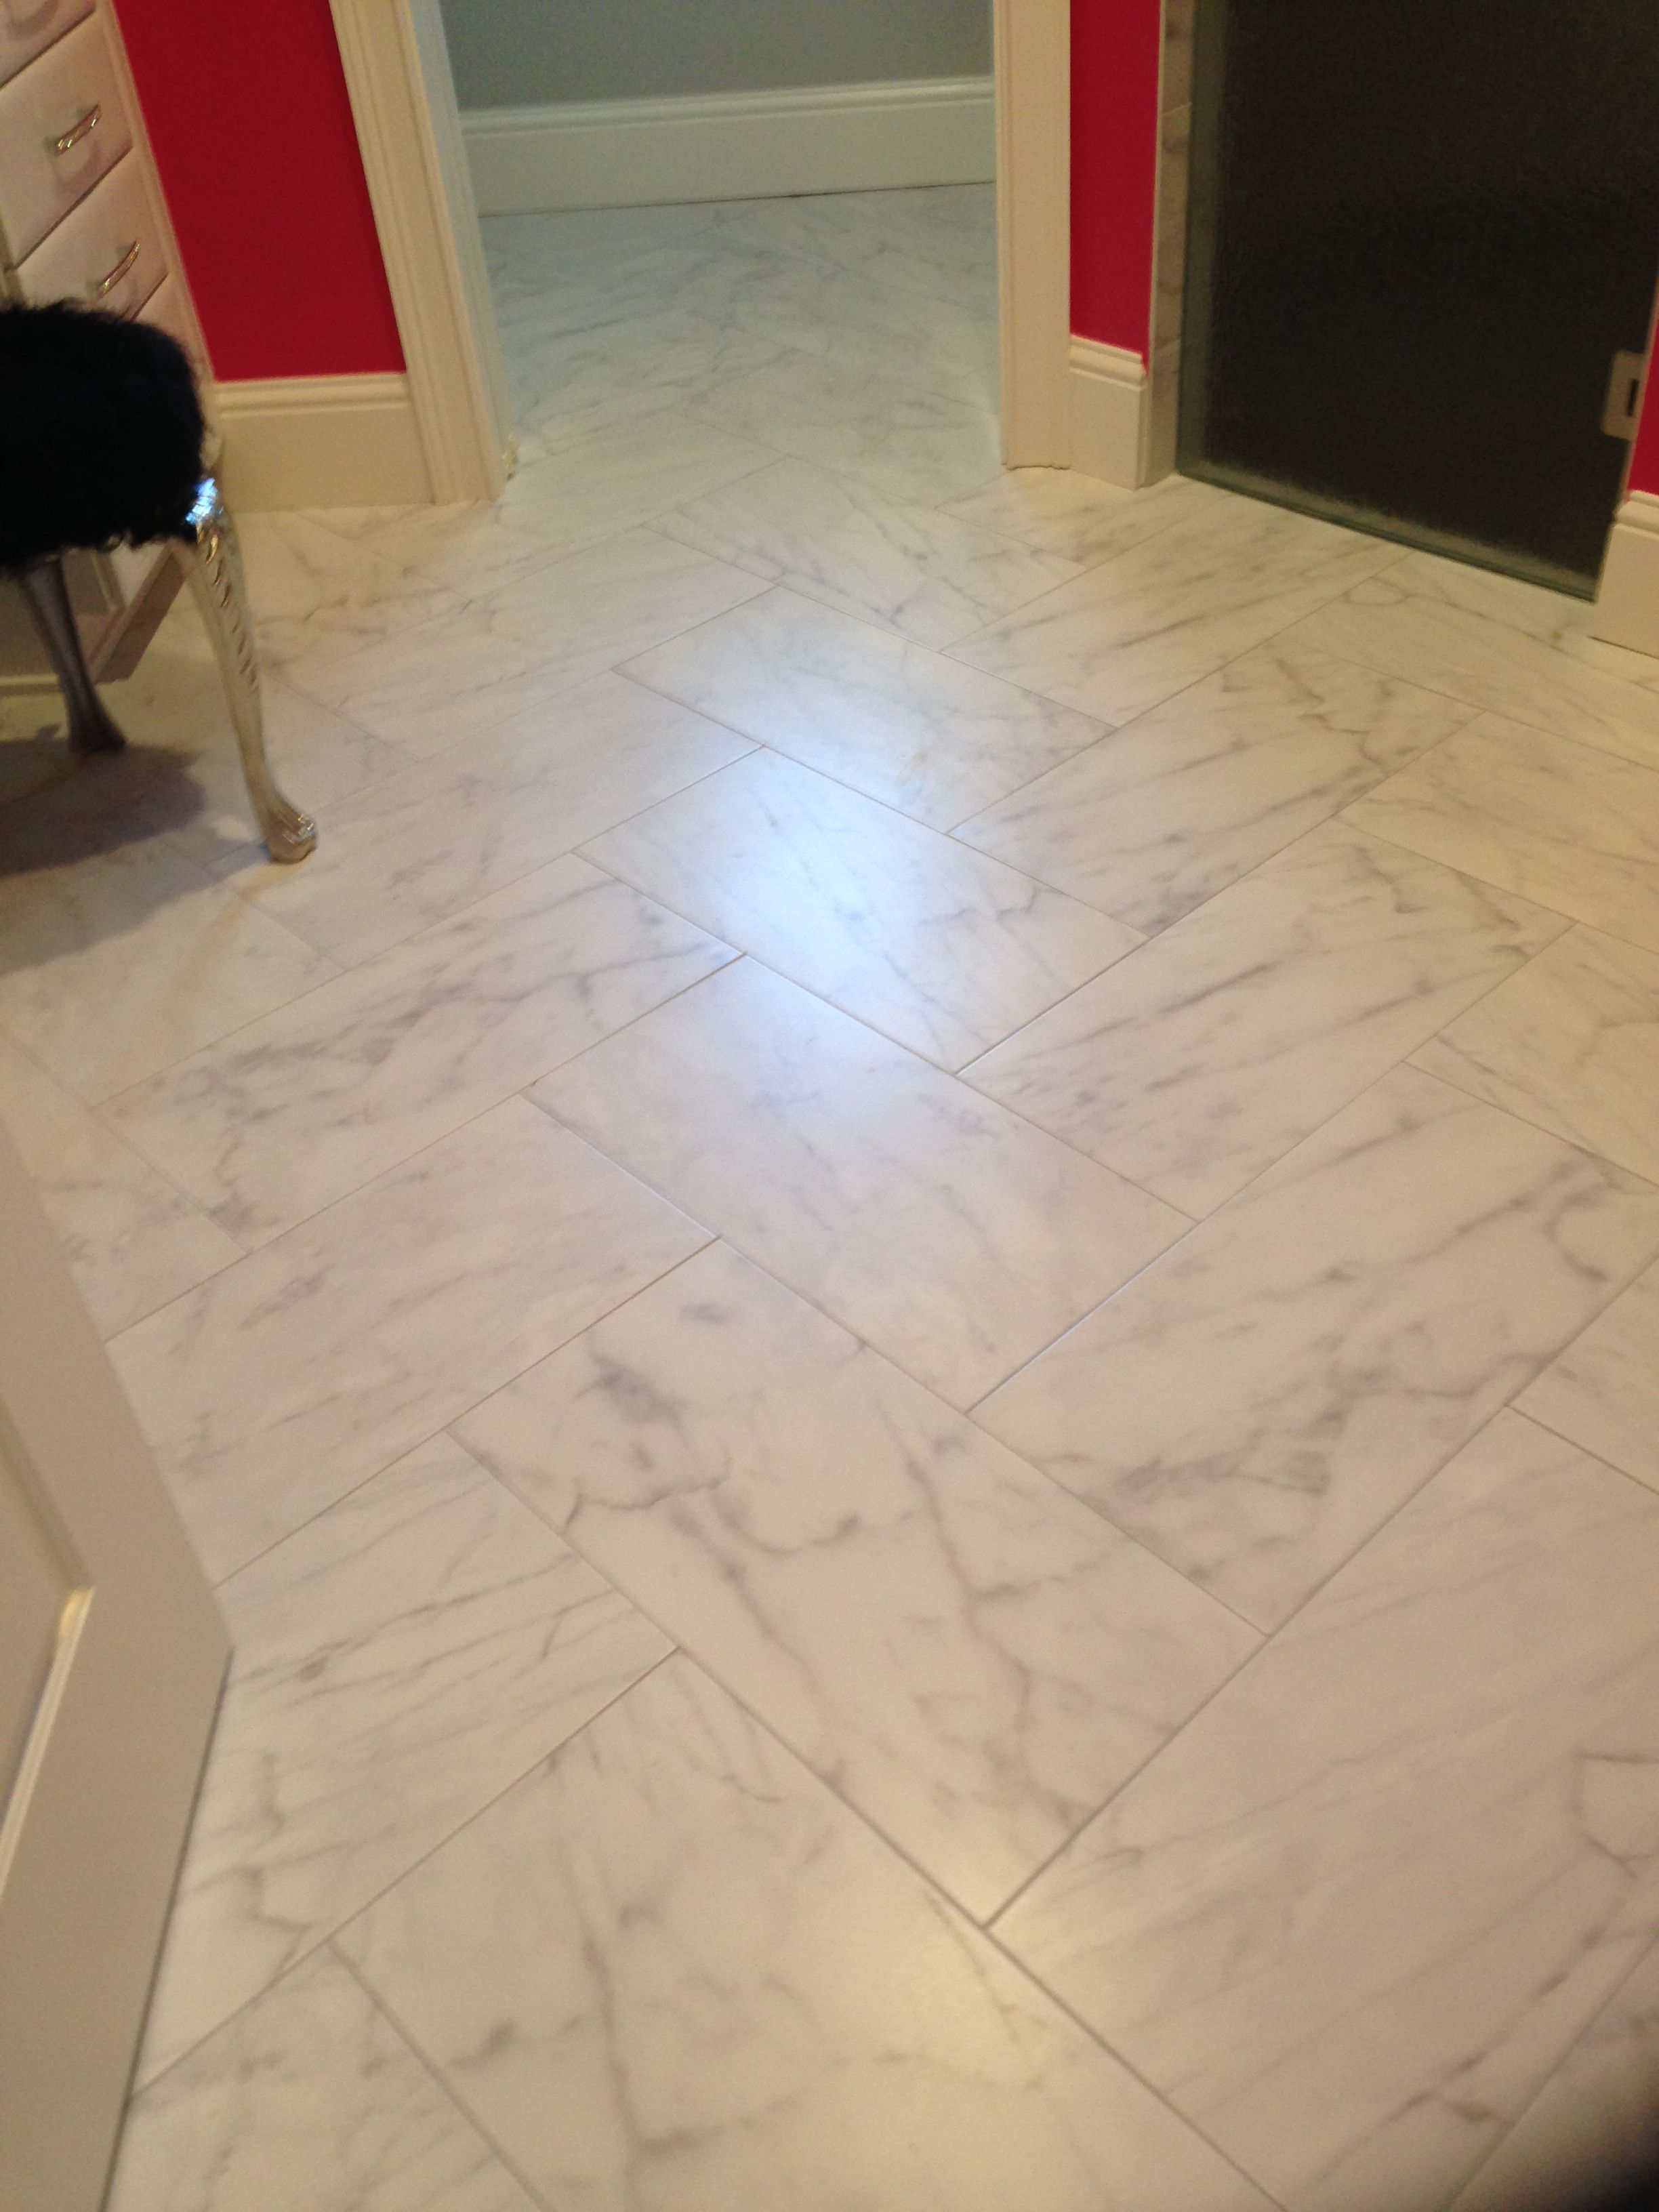 12 X 24 Carrara Look Porcelain Tile In Herringbone Pattern Herringbone Tile Floors Flooring Patterned Floor Tiles